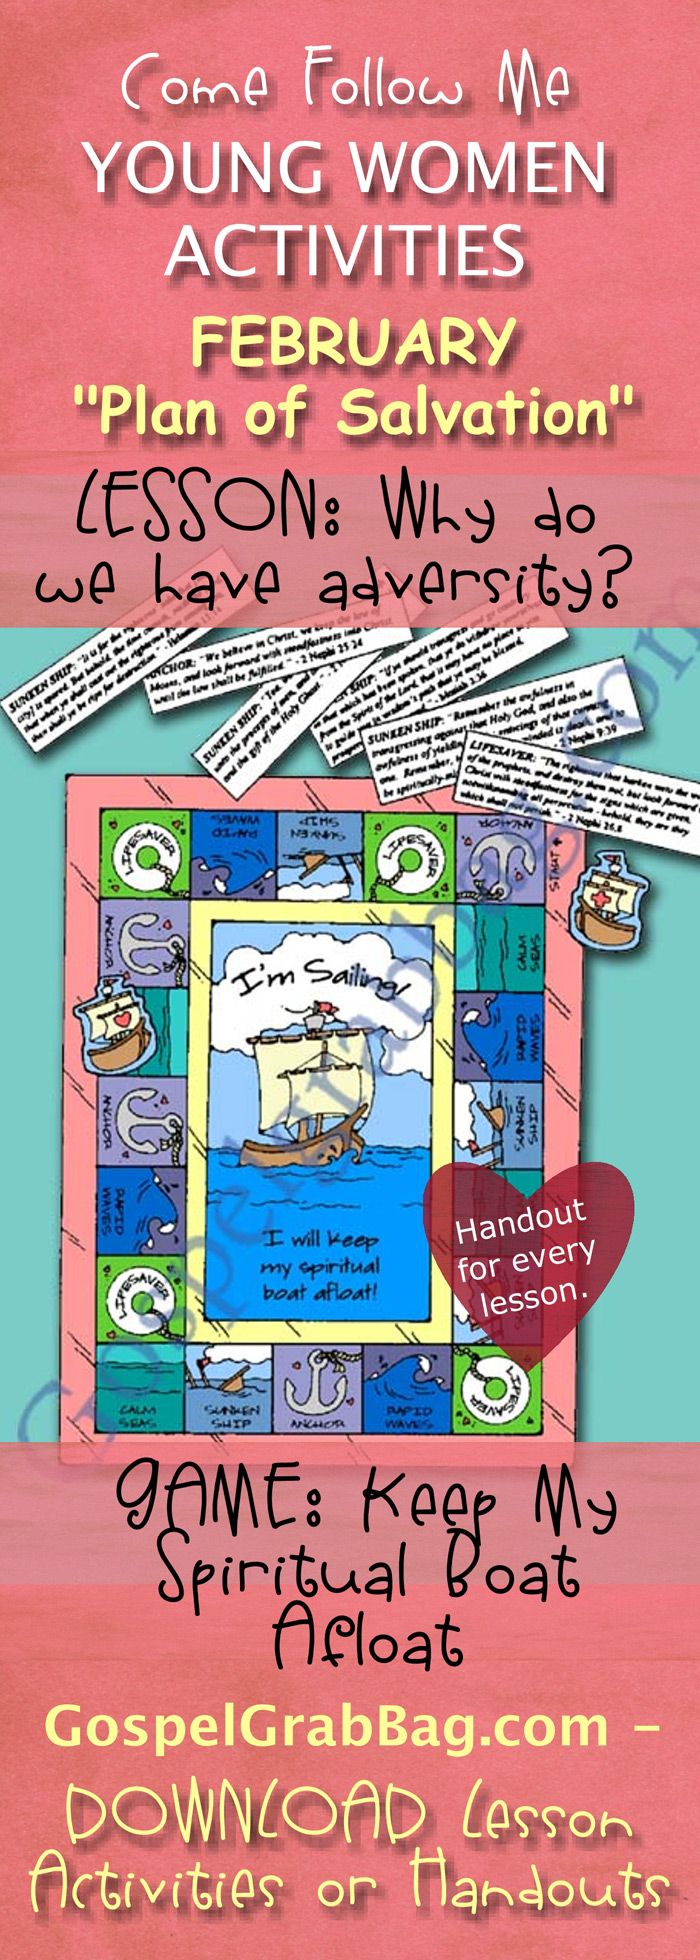 COMMANDMENTS – PLAN OF SALVATION: Come Follow Me – LDS Young Women Activities, February Theme: The Plan of Salvation, Lesson Topic #5: Why do we have adversity? handout for every lesson, ACTIVITY: Keep Spiritual Boat Afloat game, Gospel grab bag – handouts to download from gospelgrabbag.com